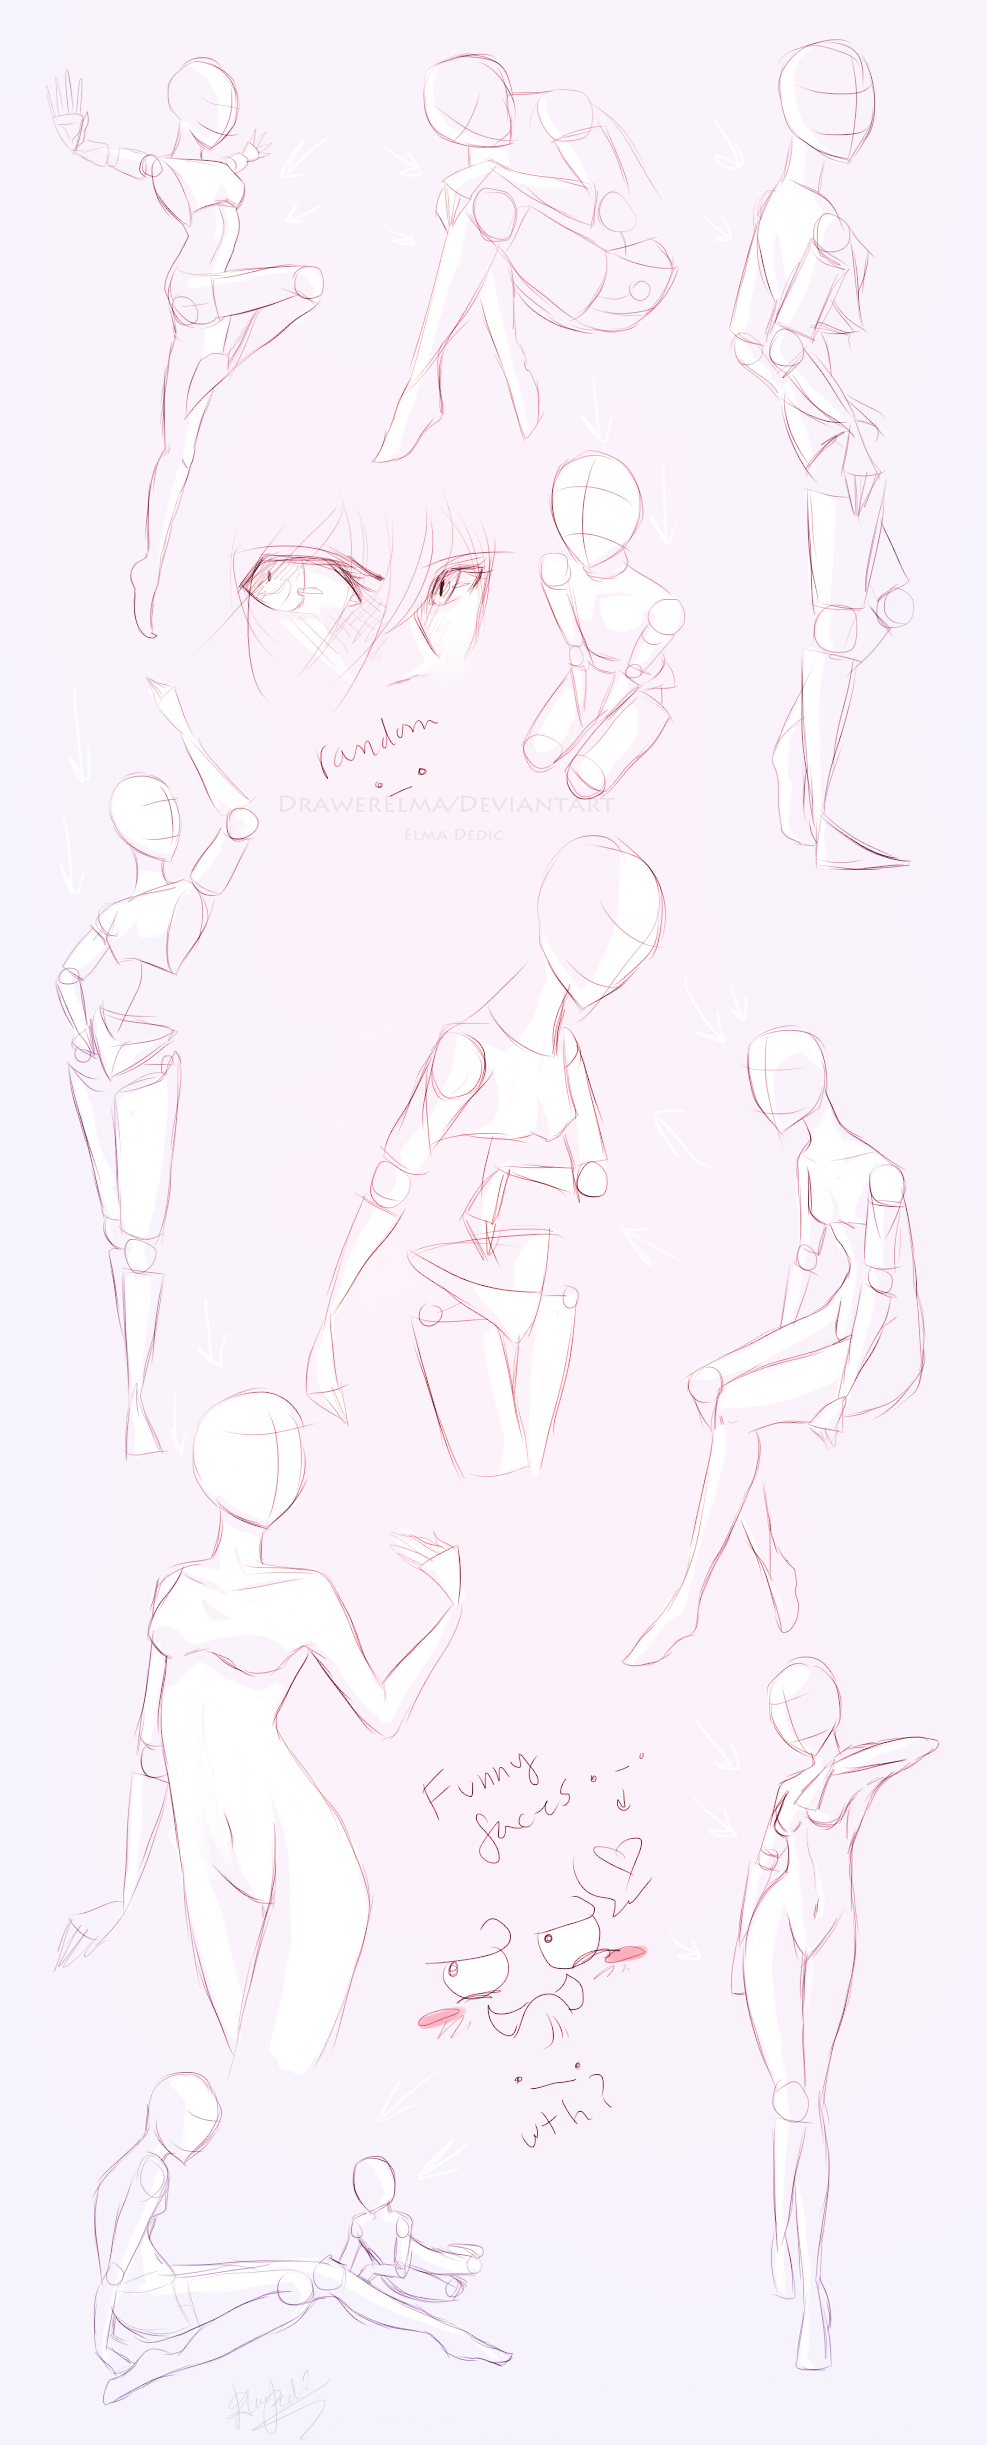 Line Drawing Female Body : Female human body sketches